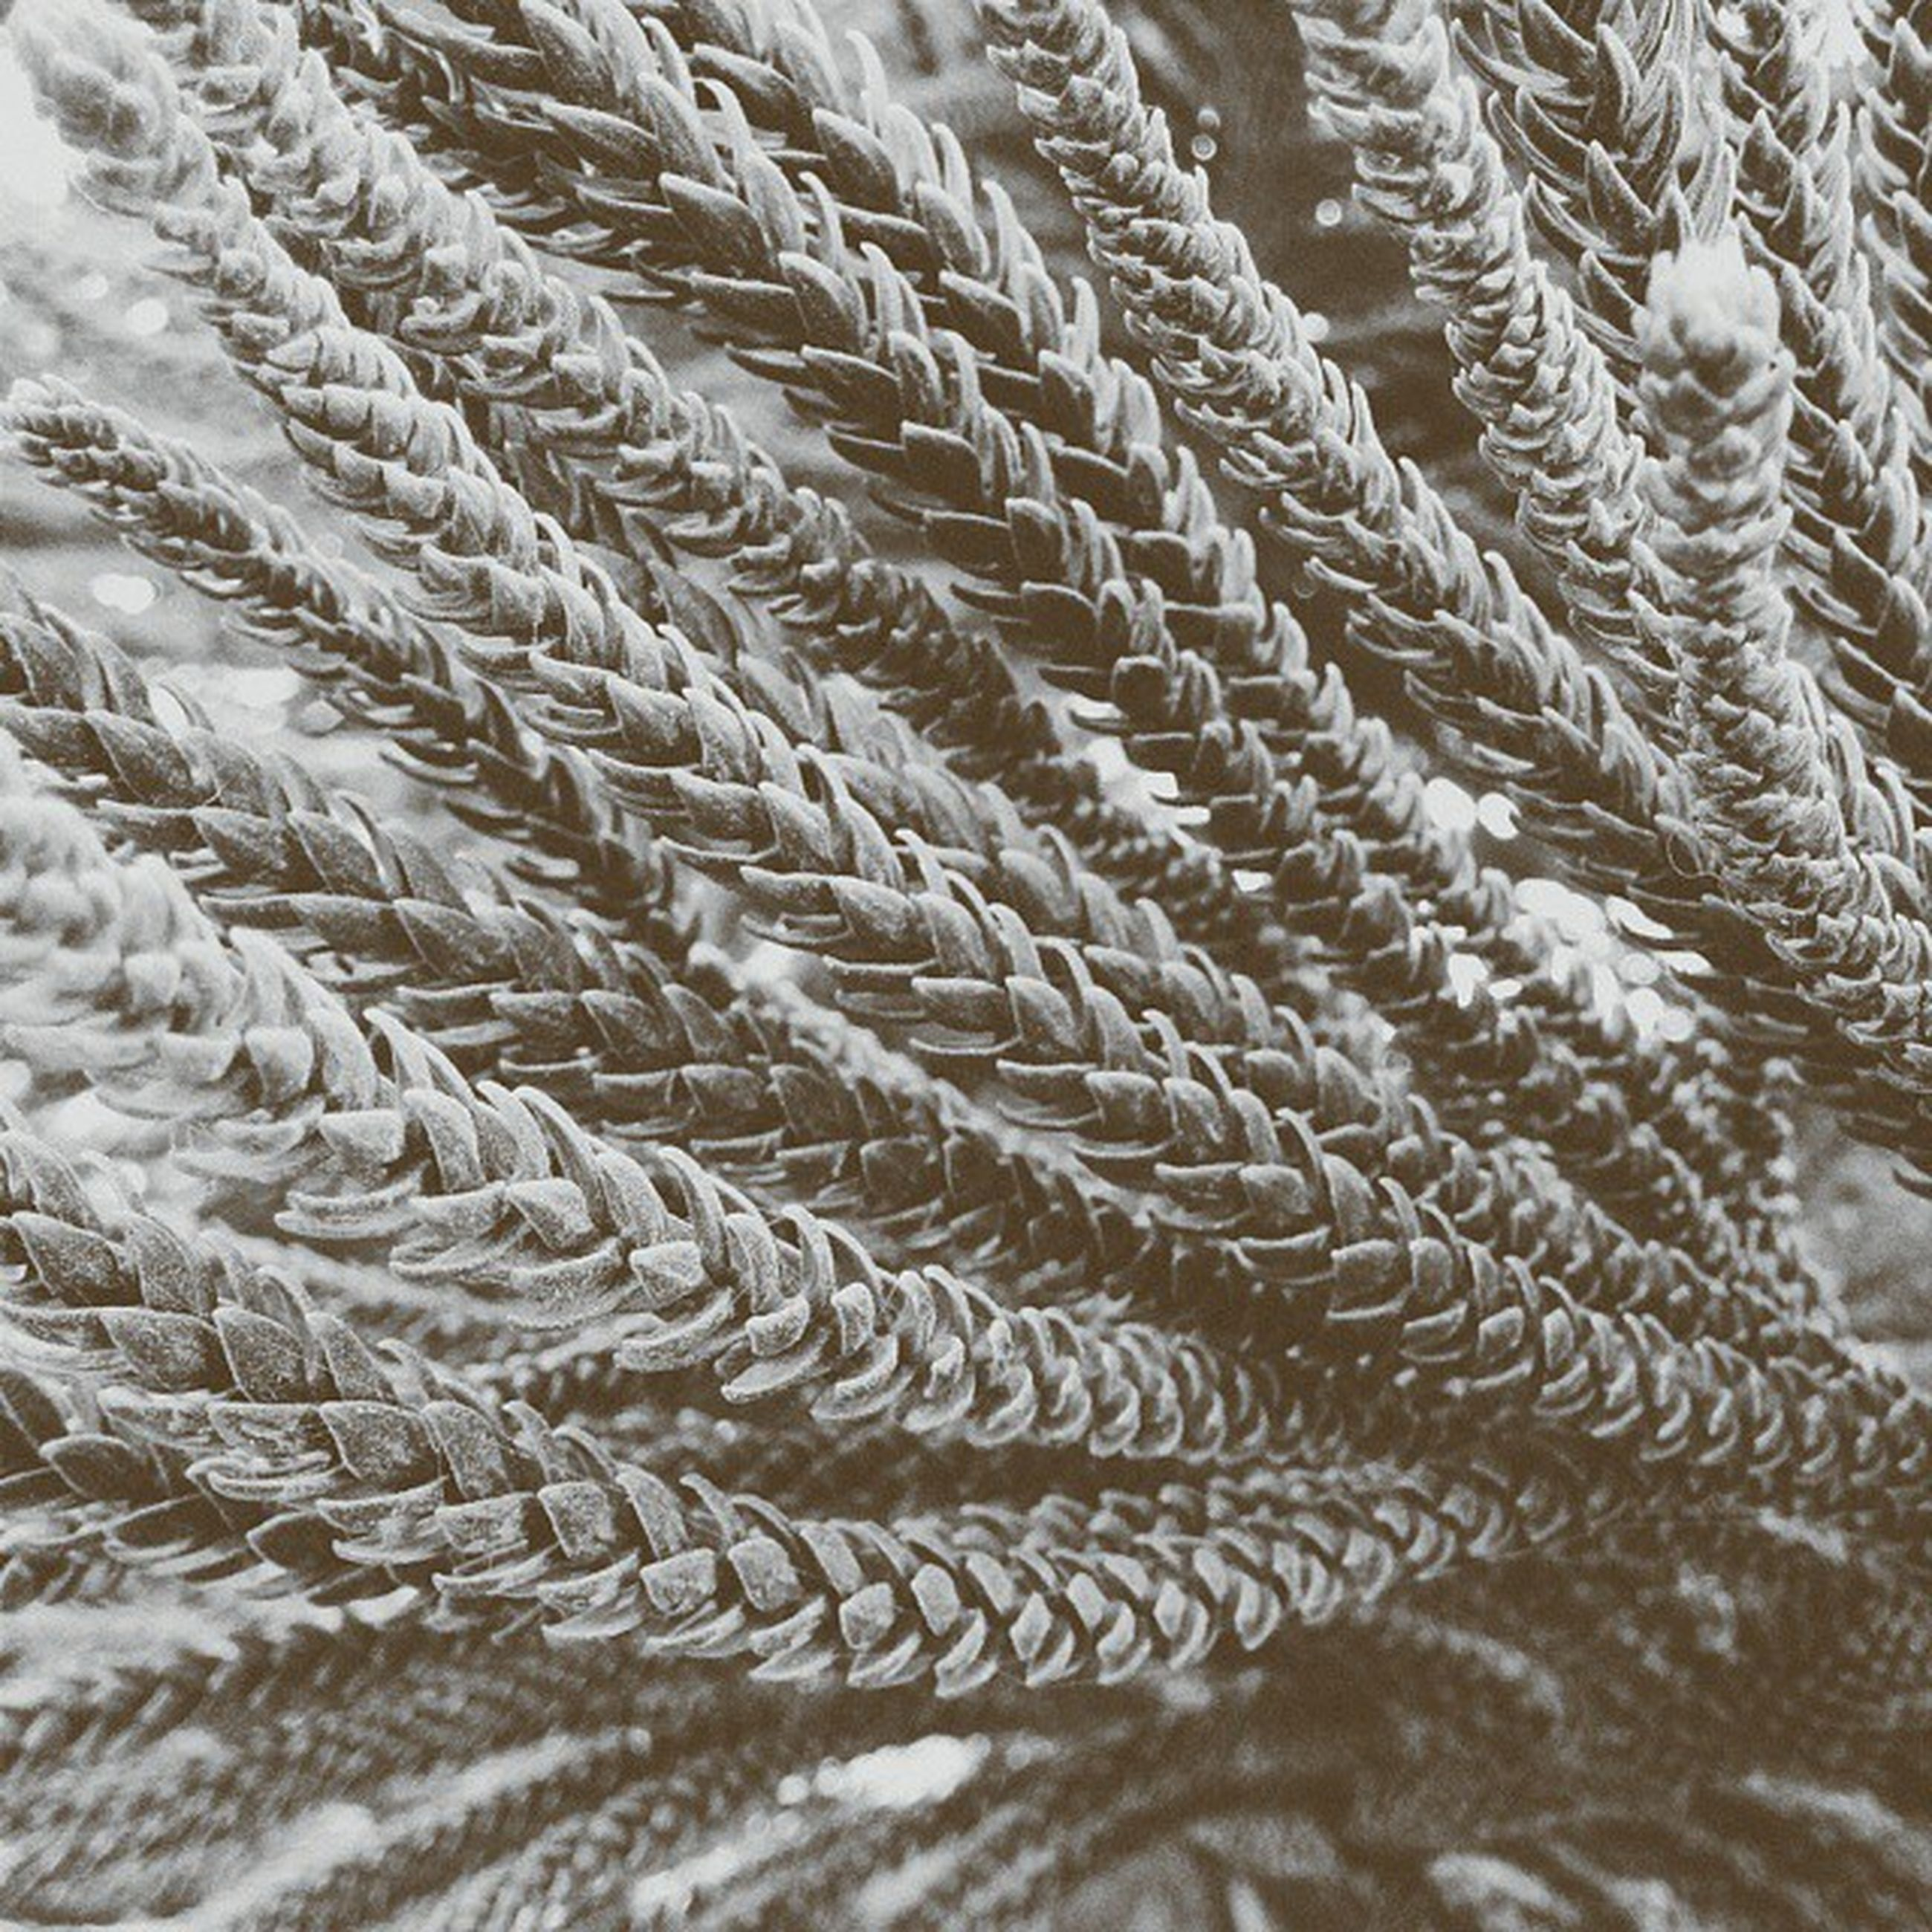 full frame, backgrounds, close-up, water, nature, pattern, cold temperature, winter, snow, day, textured, outdoors, no people, strength, natural pattern, rope, high angle view, tranquility, waterfront, rippled